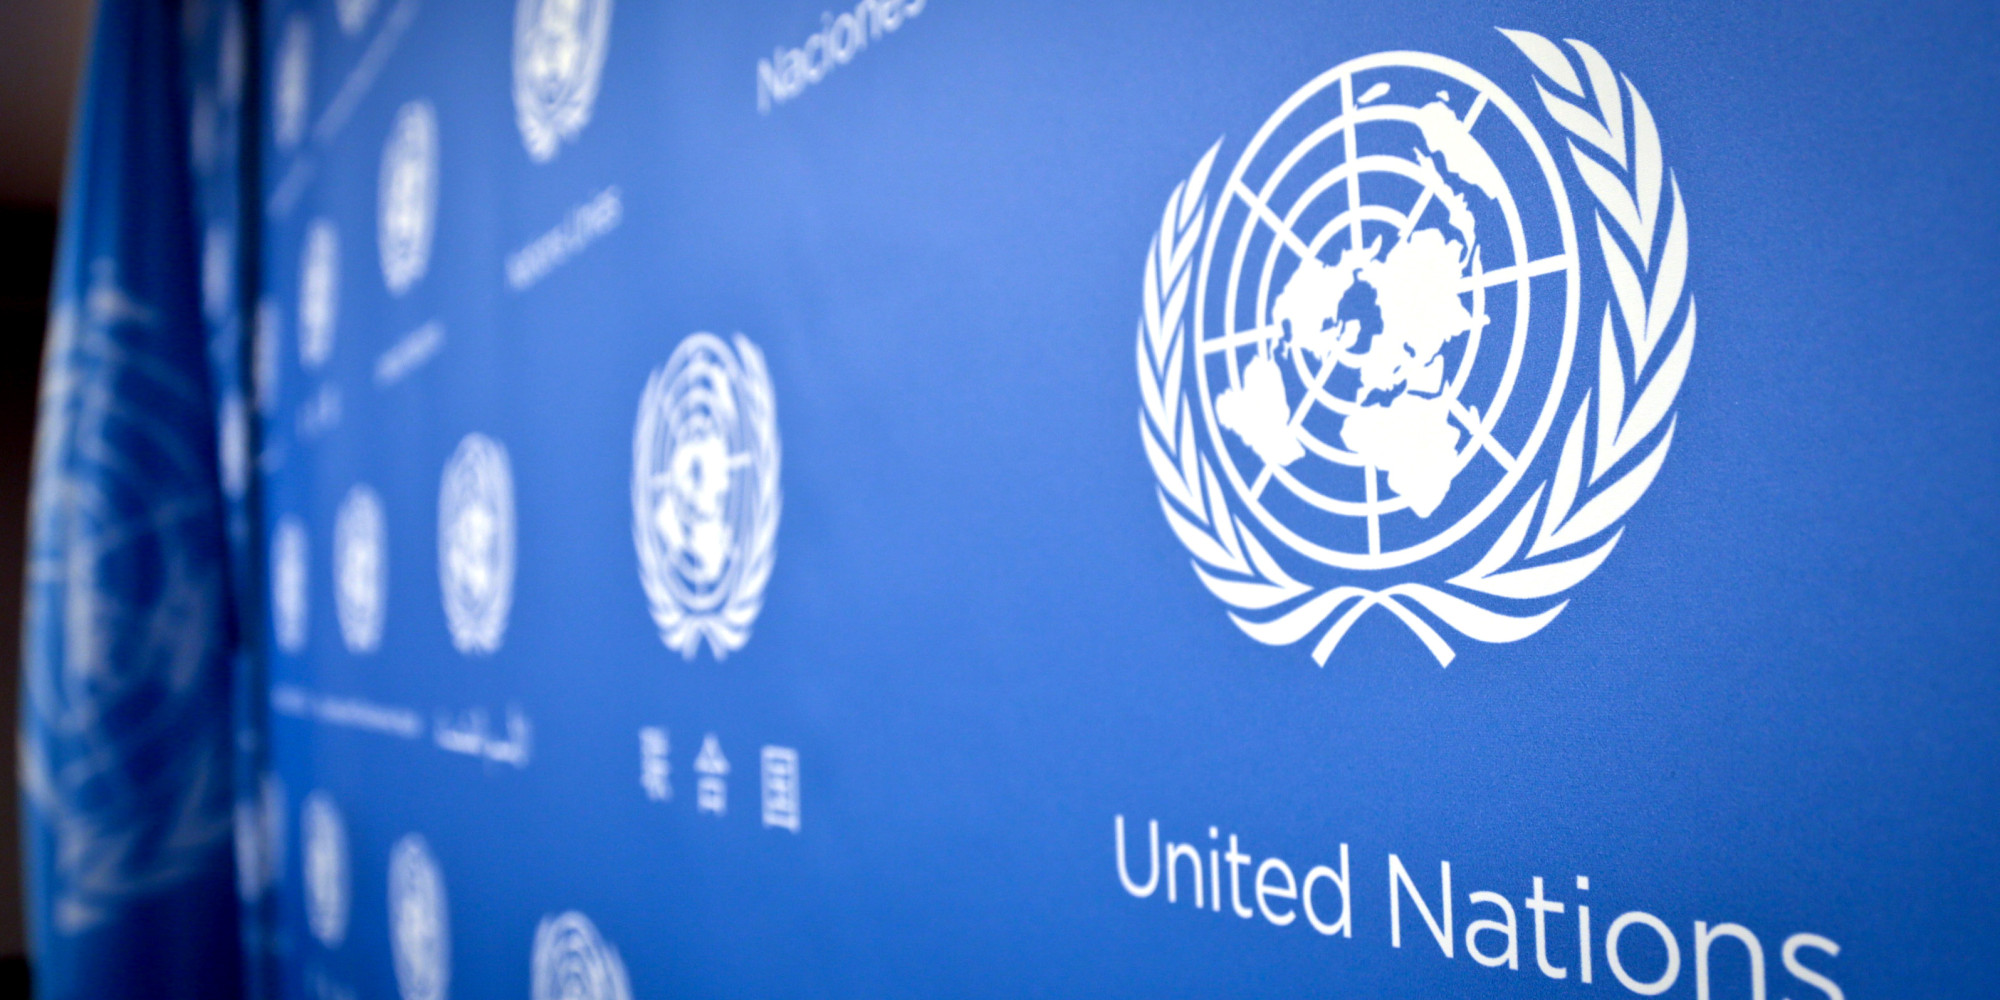 United Nations unhcr brandspurng - Global peace requires collective effort — UN